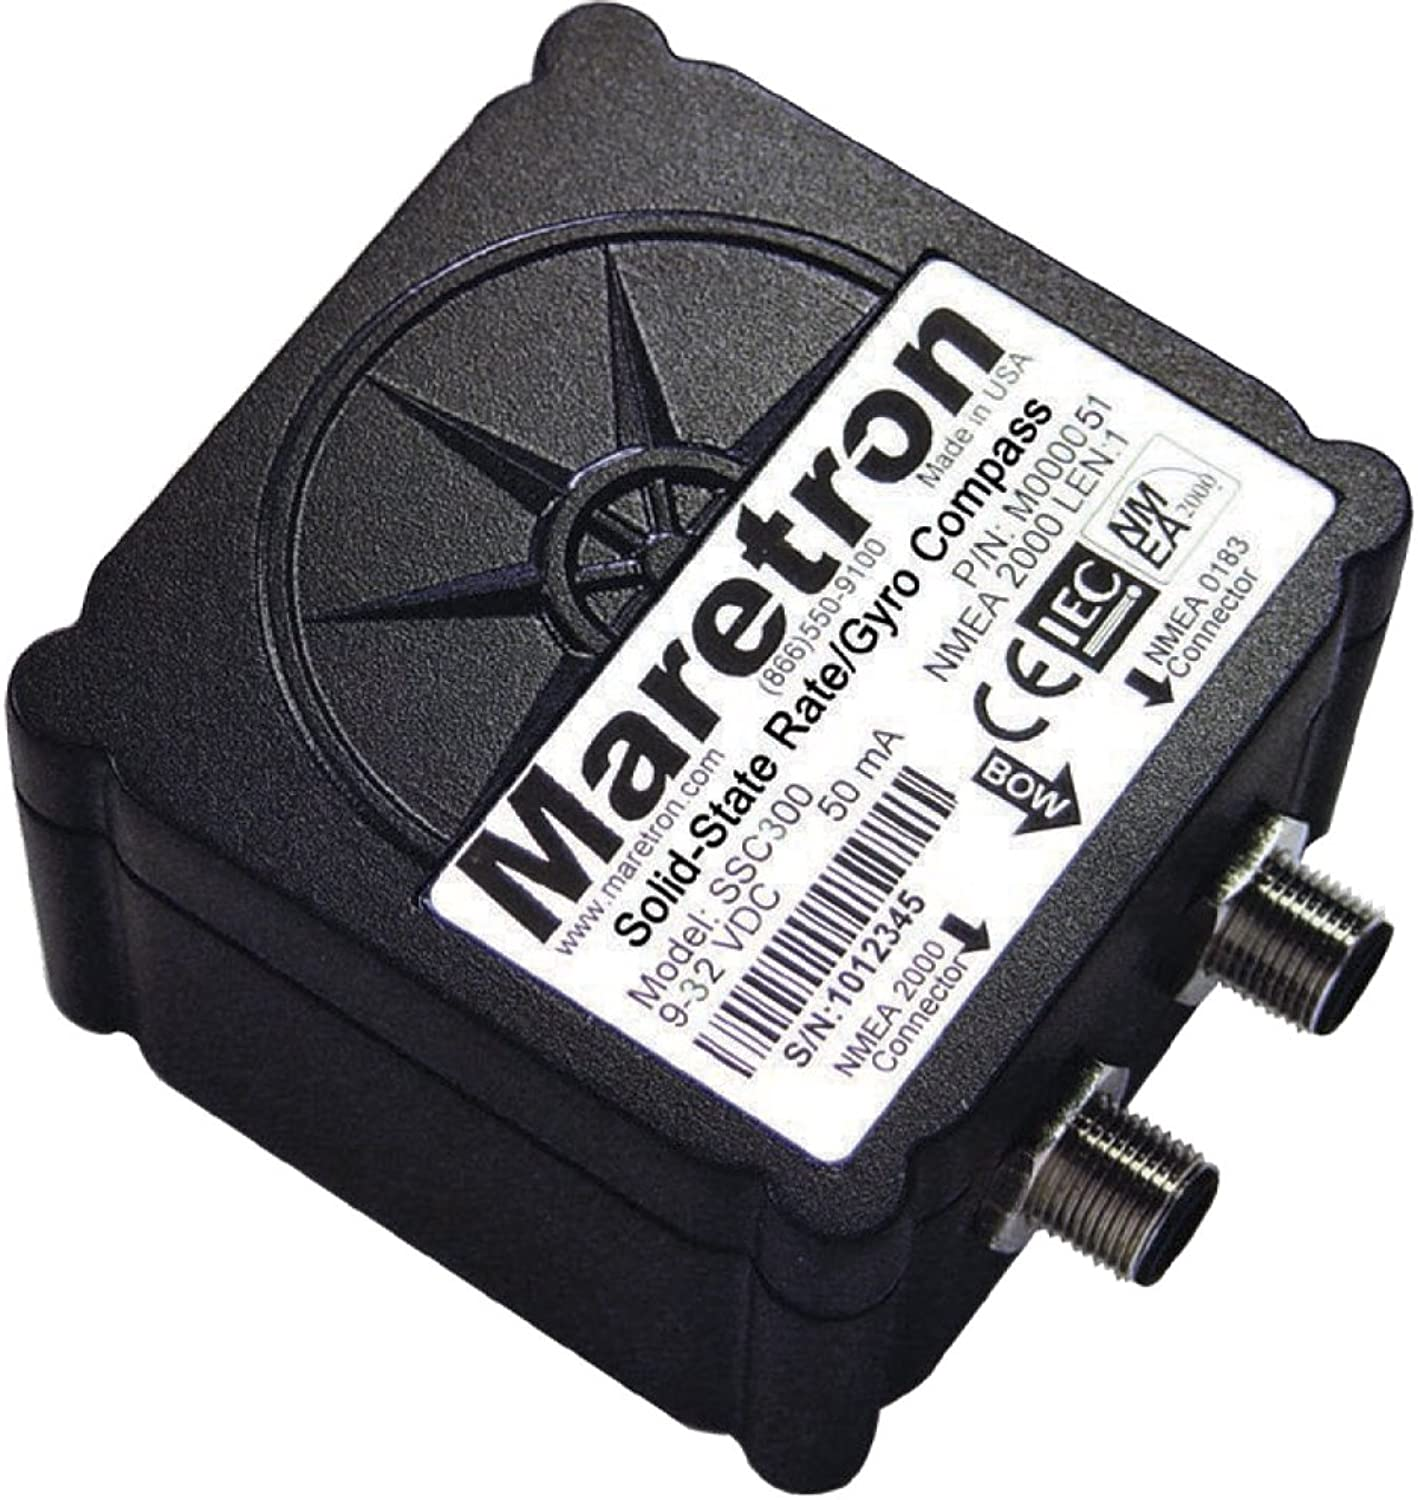 Maretron SolidState Rate Gyro Compass w o Cables (SSC30001) (57661)